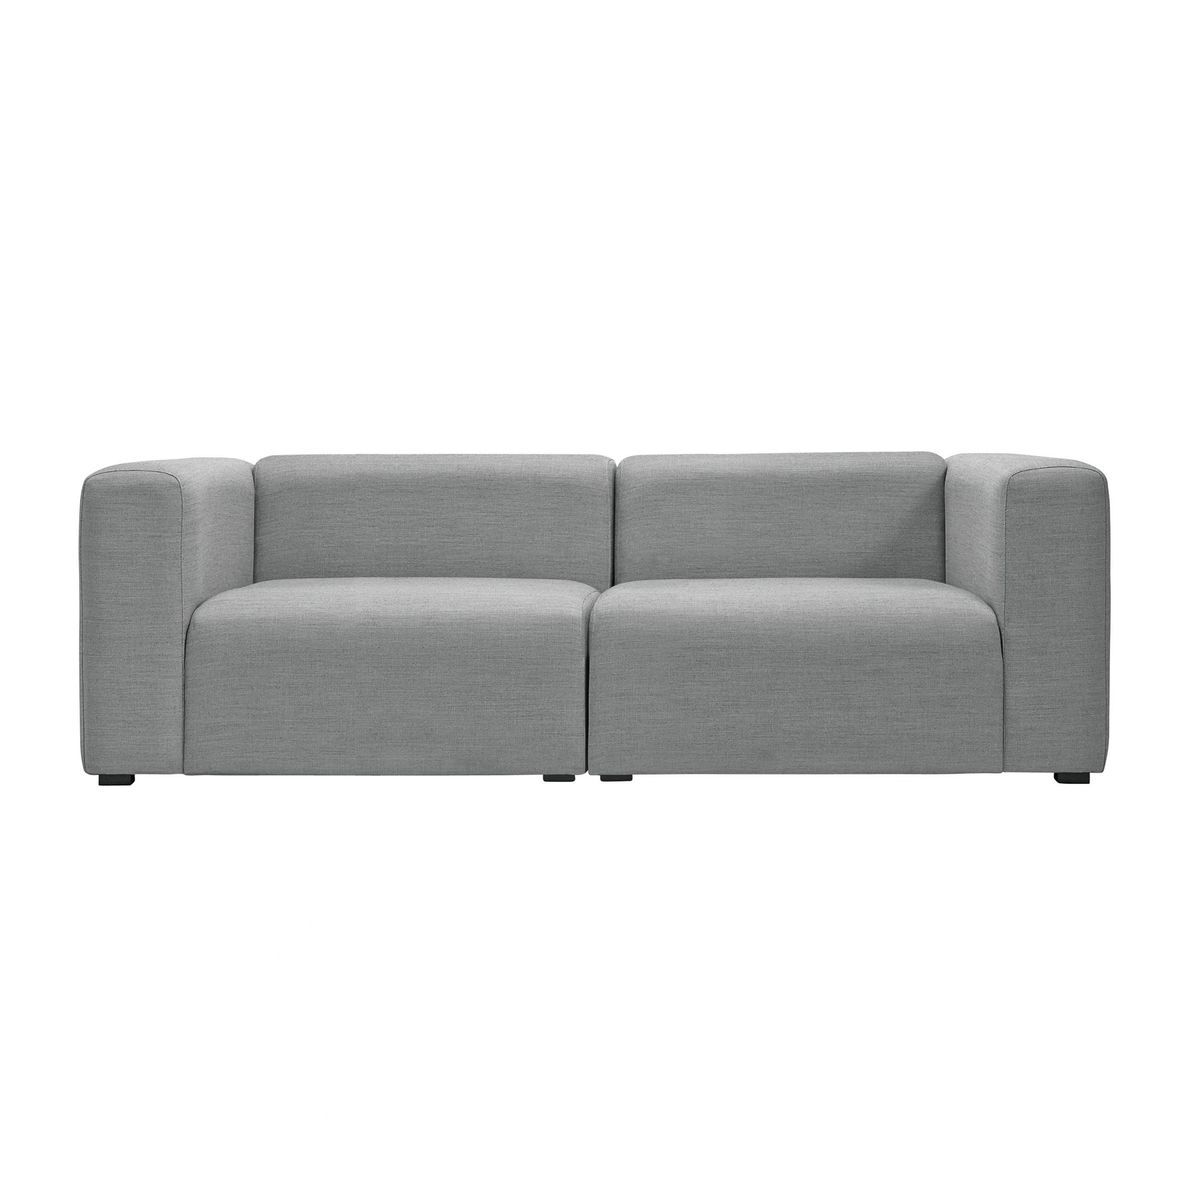 Sofa stoff  Mags 2,5-Sitzer Sofa Stoff Surface | HAY | AmbienteDirect.com